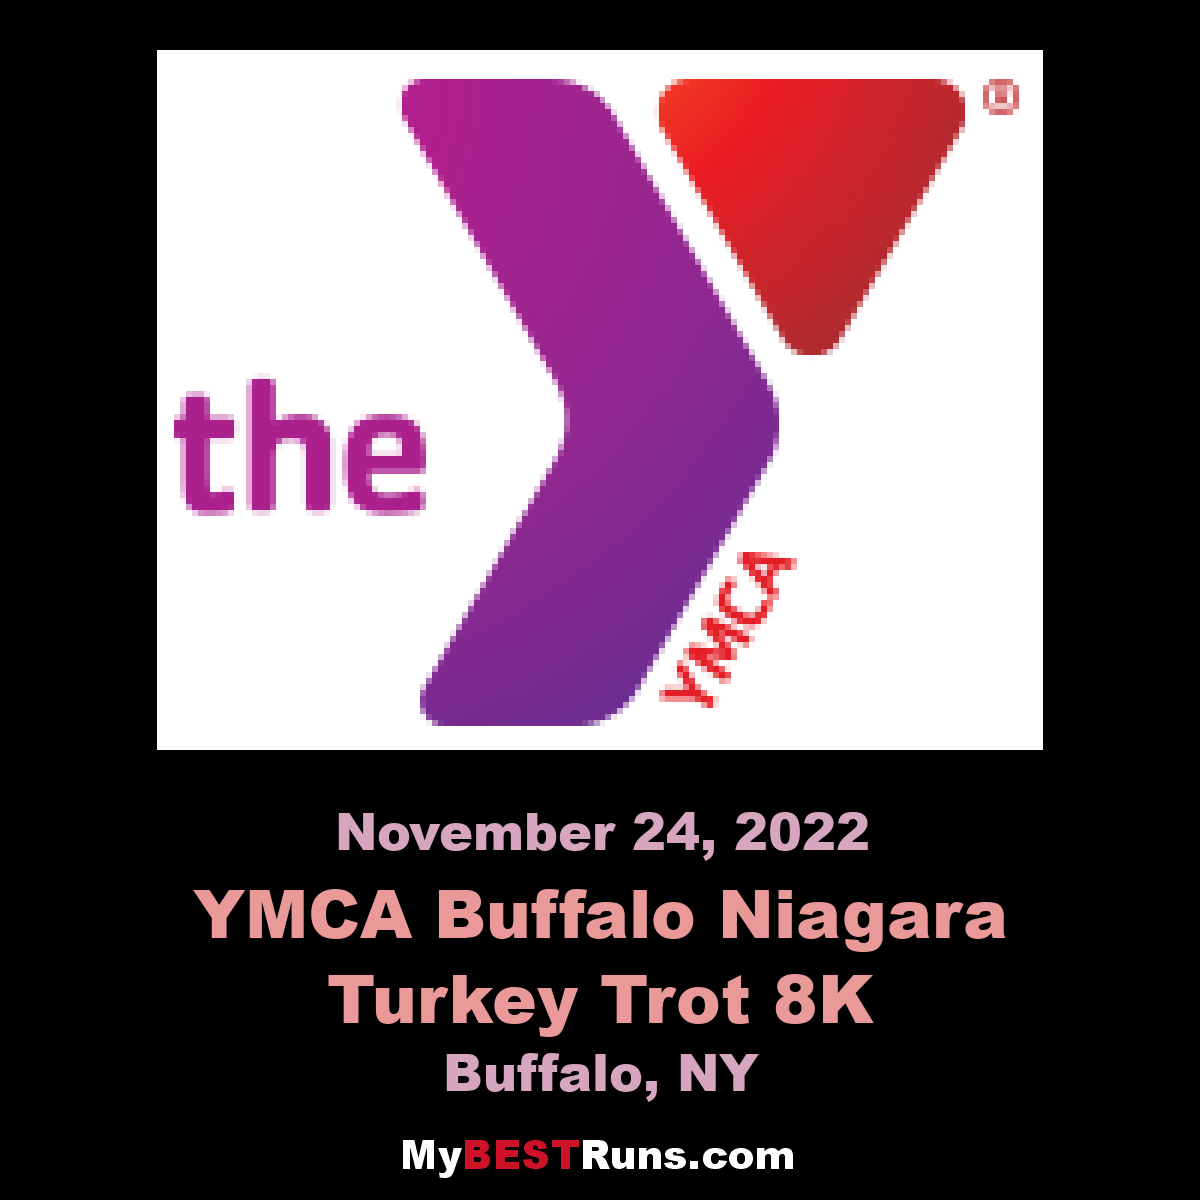 YMCA Buffalo Niagara Turkey Trot 8K